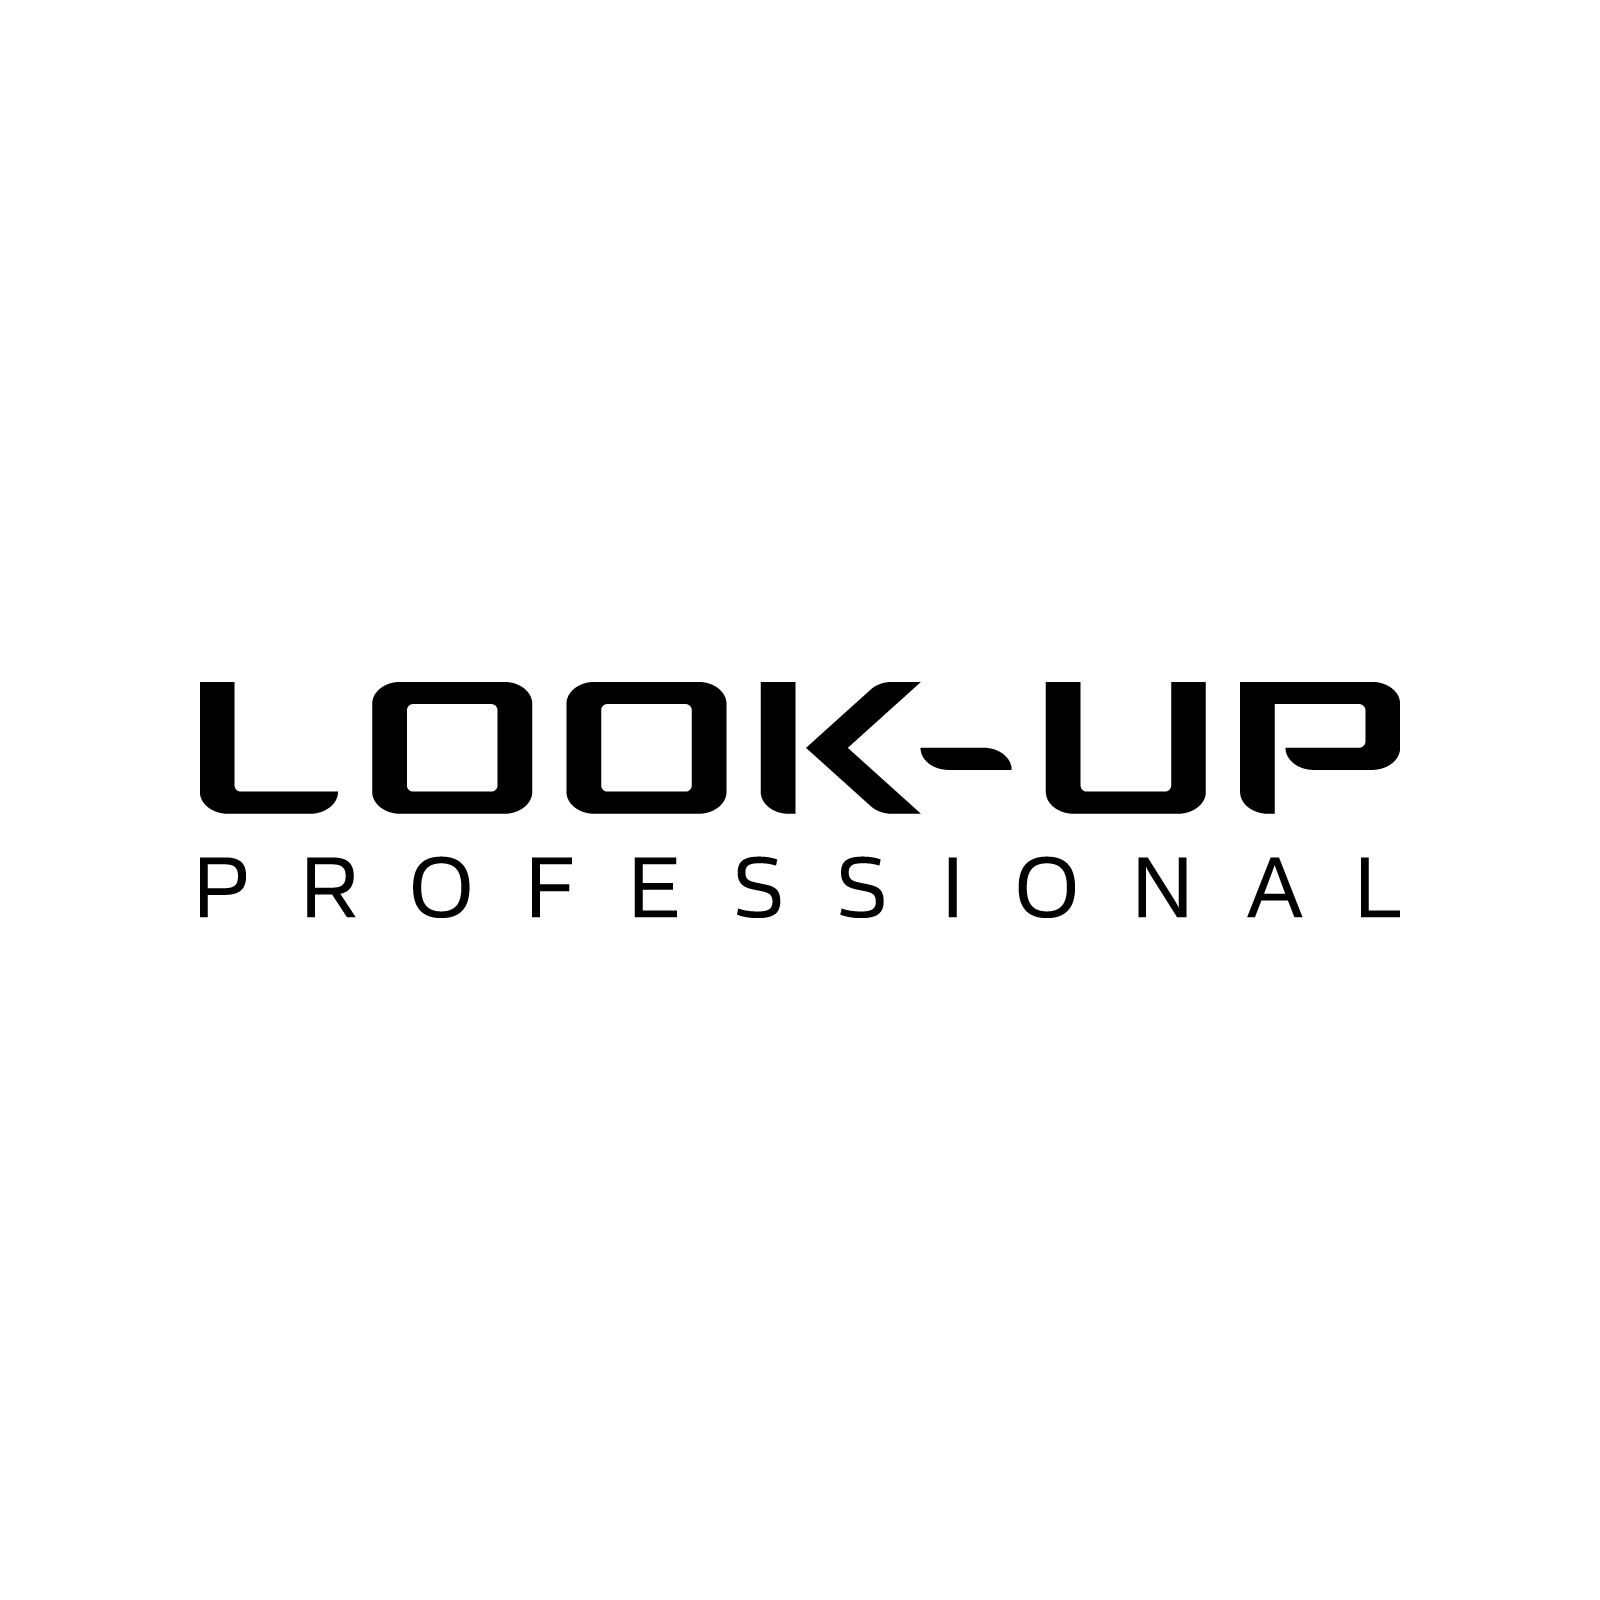 Look-Up professional